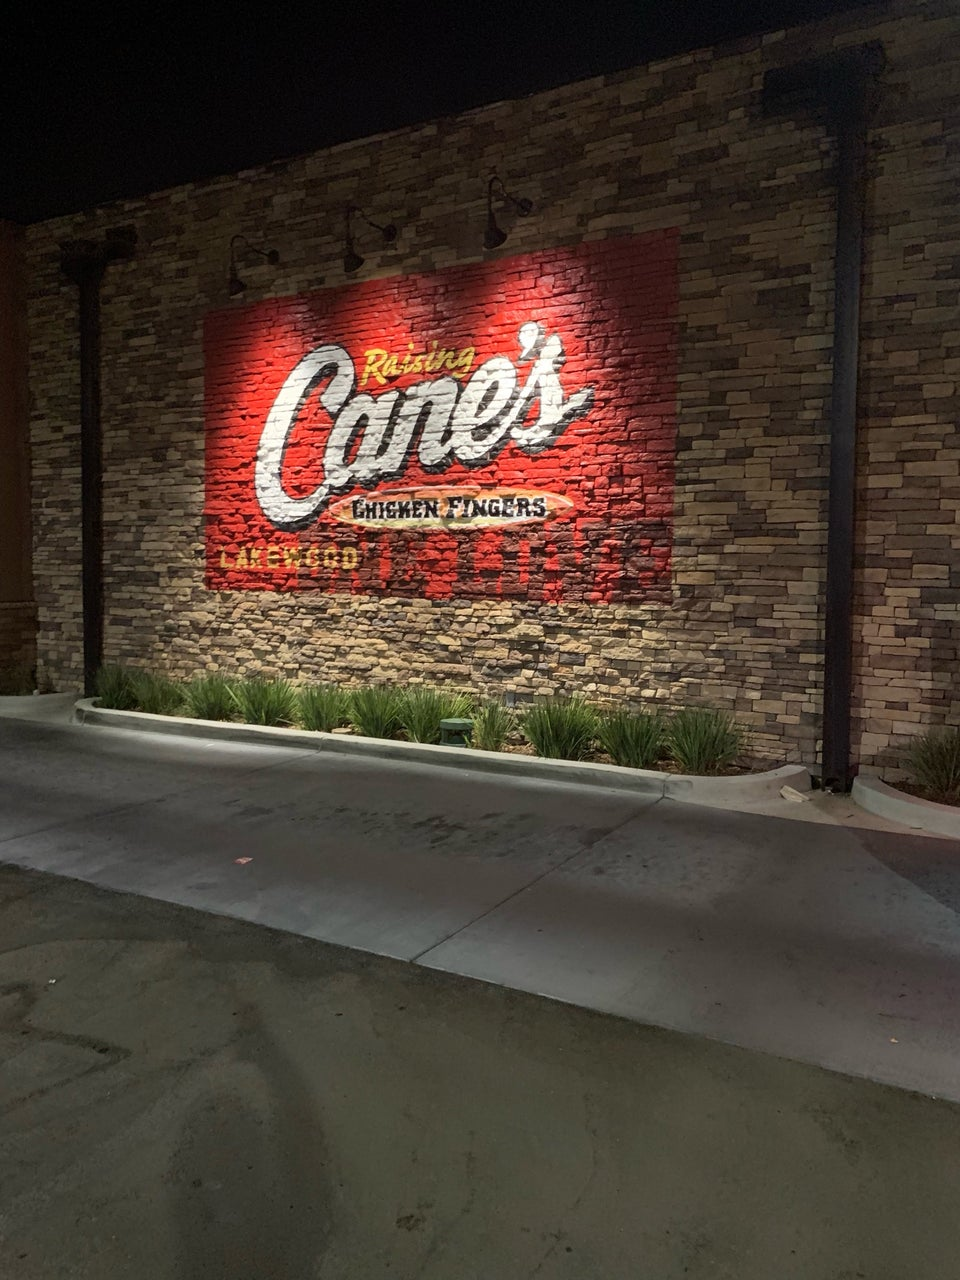 Raising Cane's Chicken Fingers 4634 Candlewood St, Lakewood